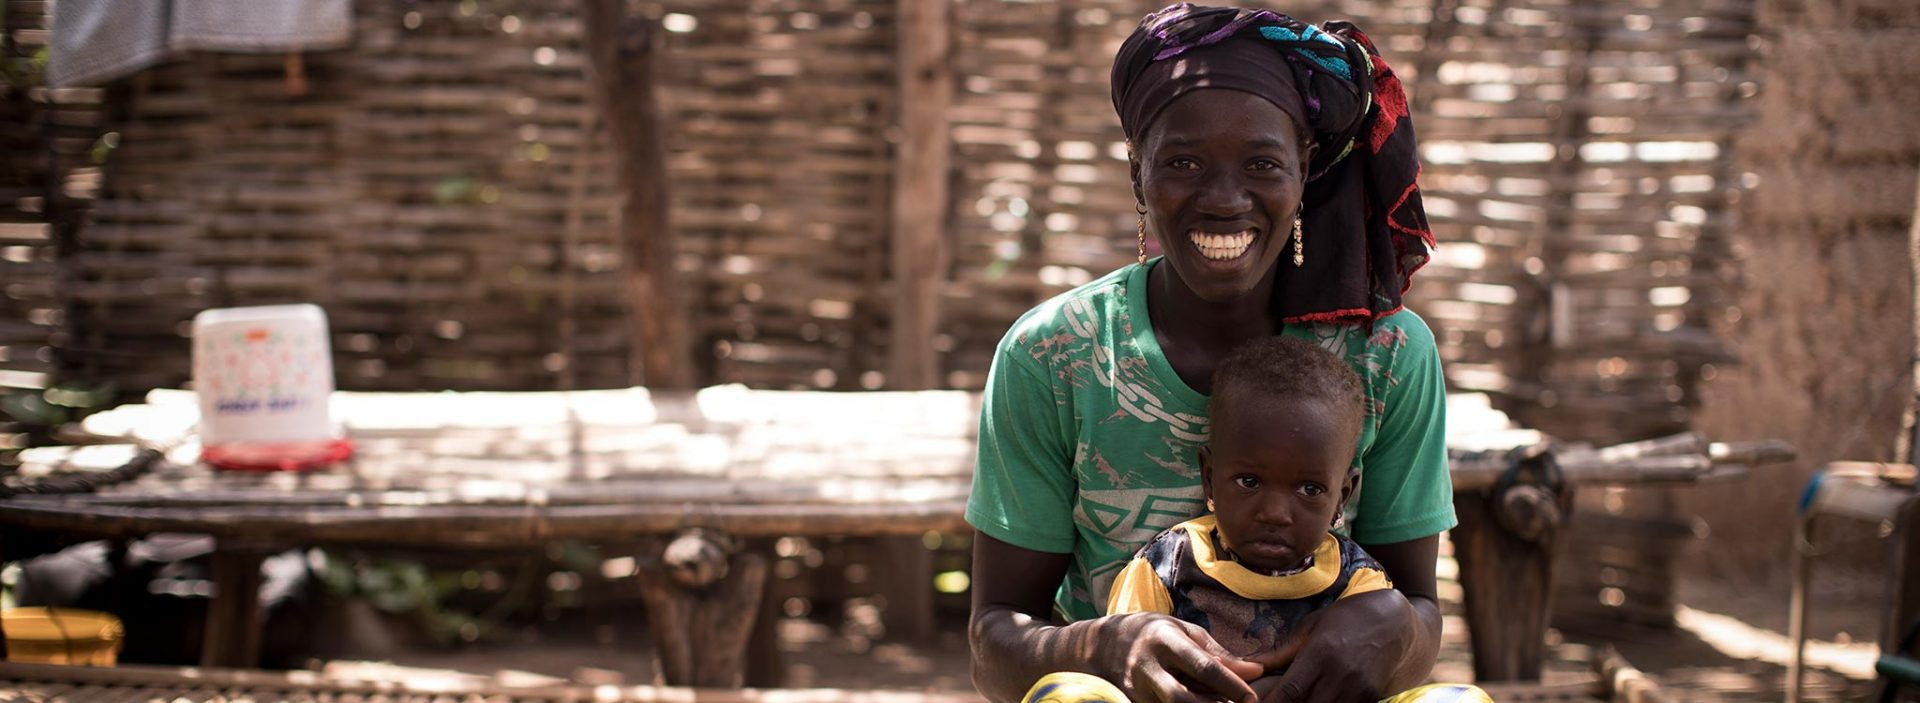 A woman and her child in Mali. They've been supported by Action Against Hunger's community health workers.